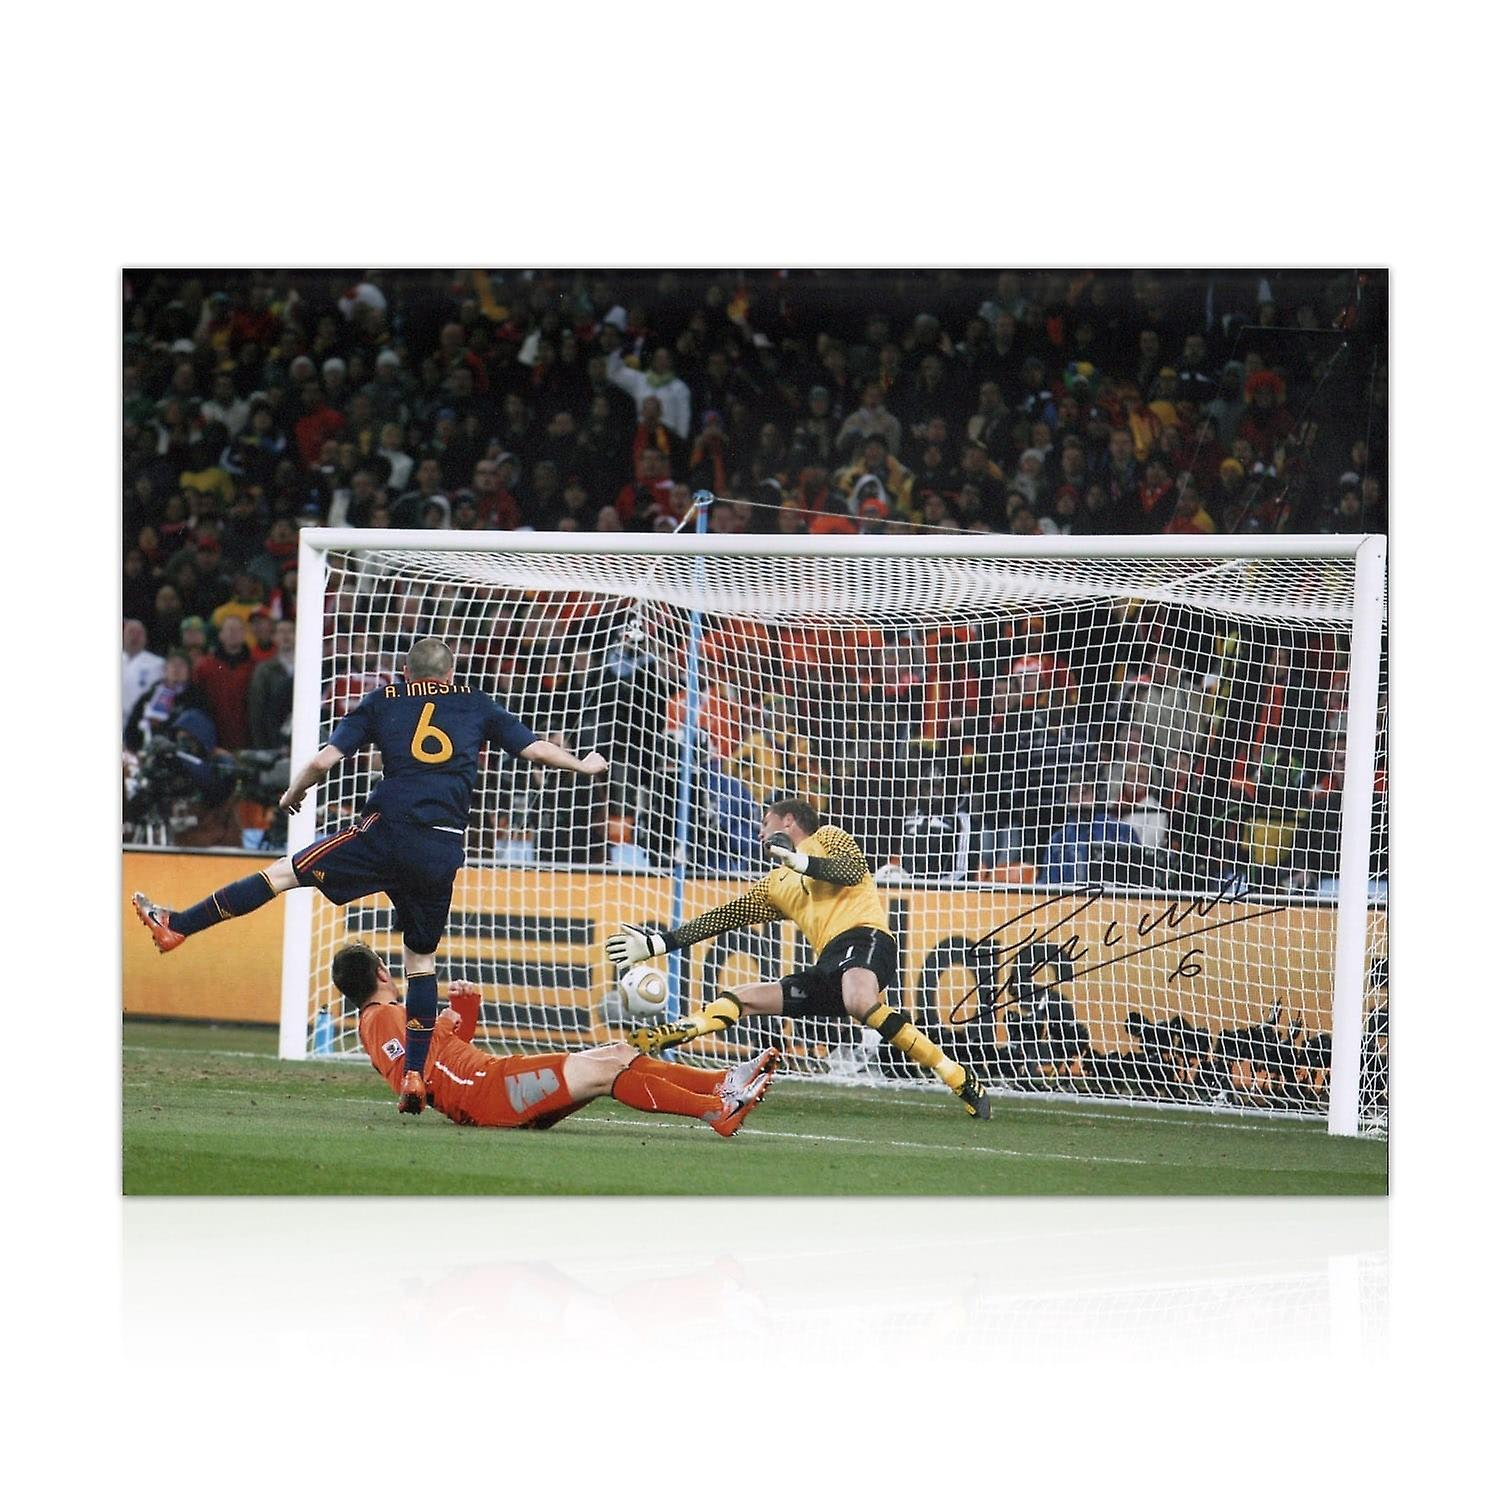 Andres Iniesta Signed Spain Photo  World Cup 2010 Winning Goal  f8f5b77edac42